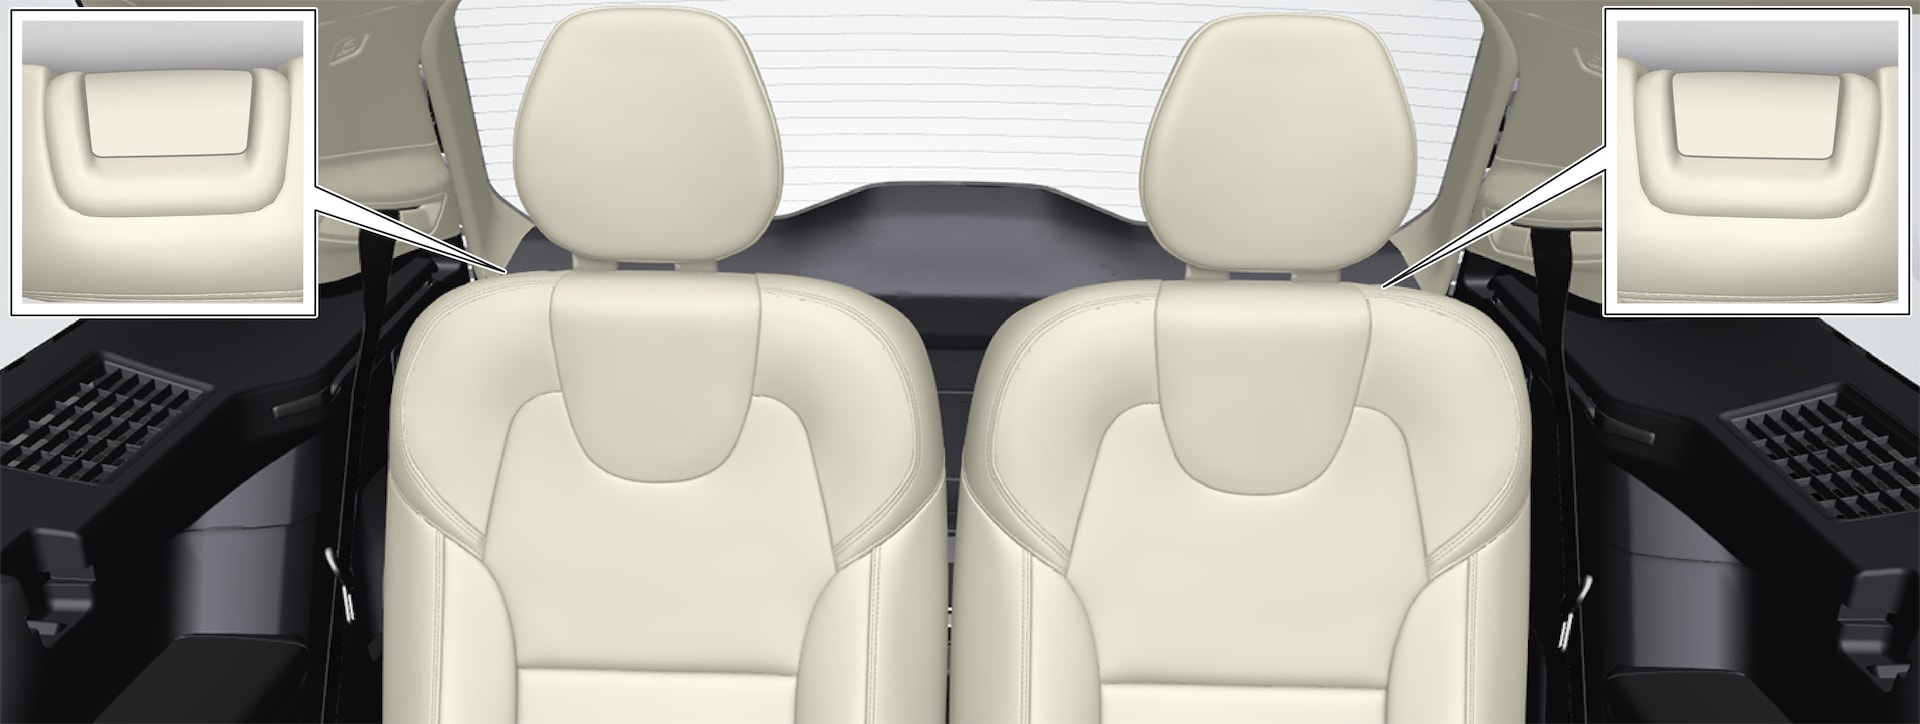 P5-1546--3rd seat row-Manually folding with handle